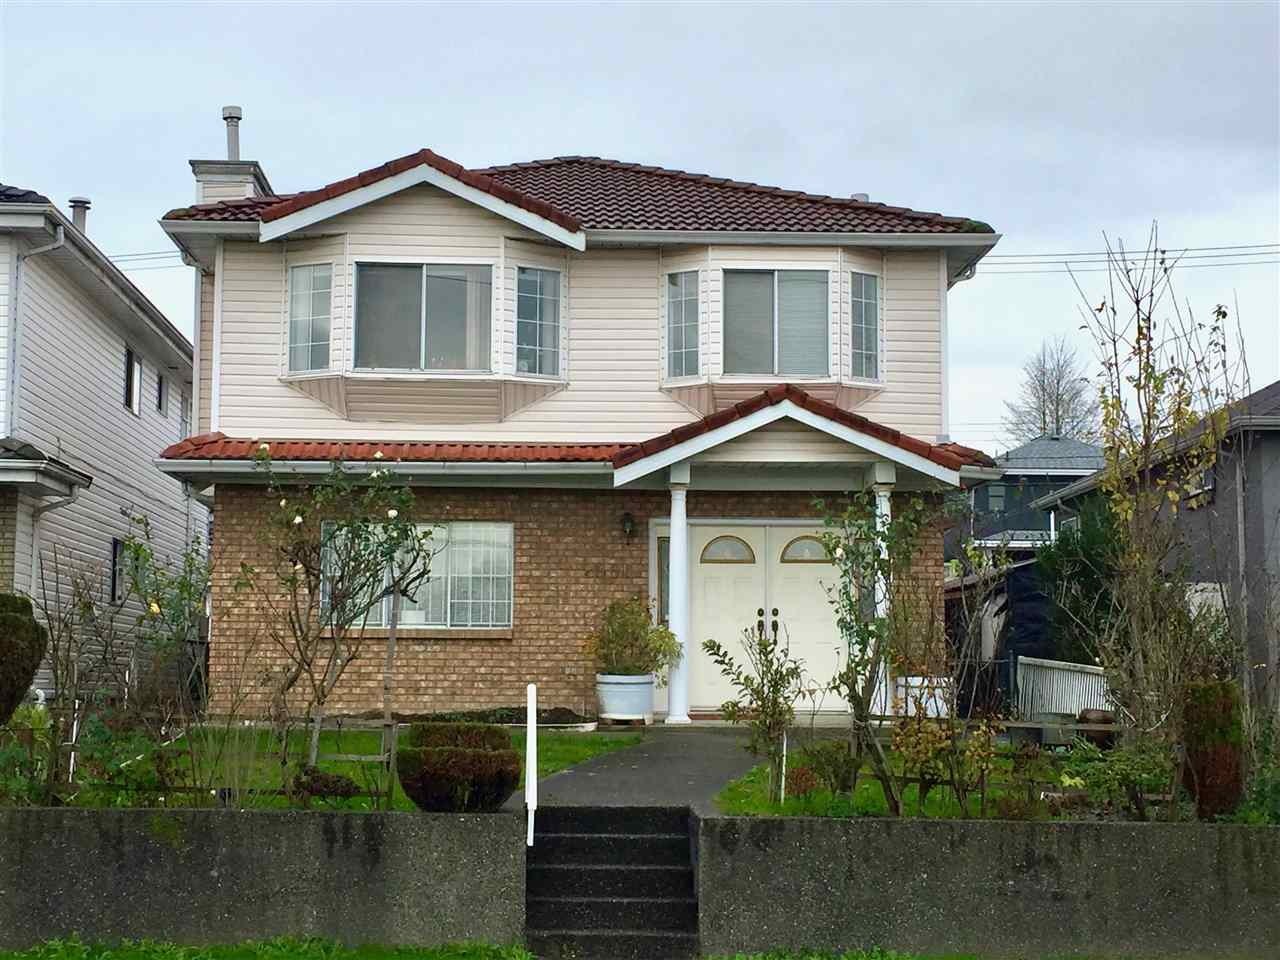 2861 E BROADWAY, Vancouver, BC, V5M 1Y9 Photo 1